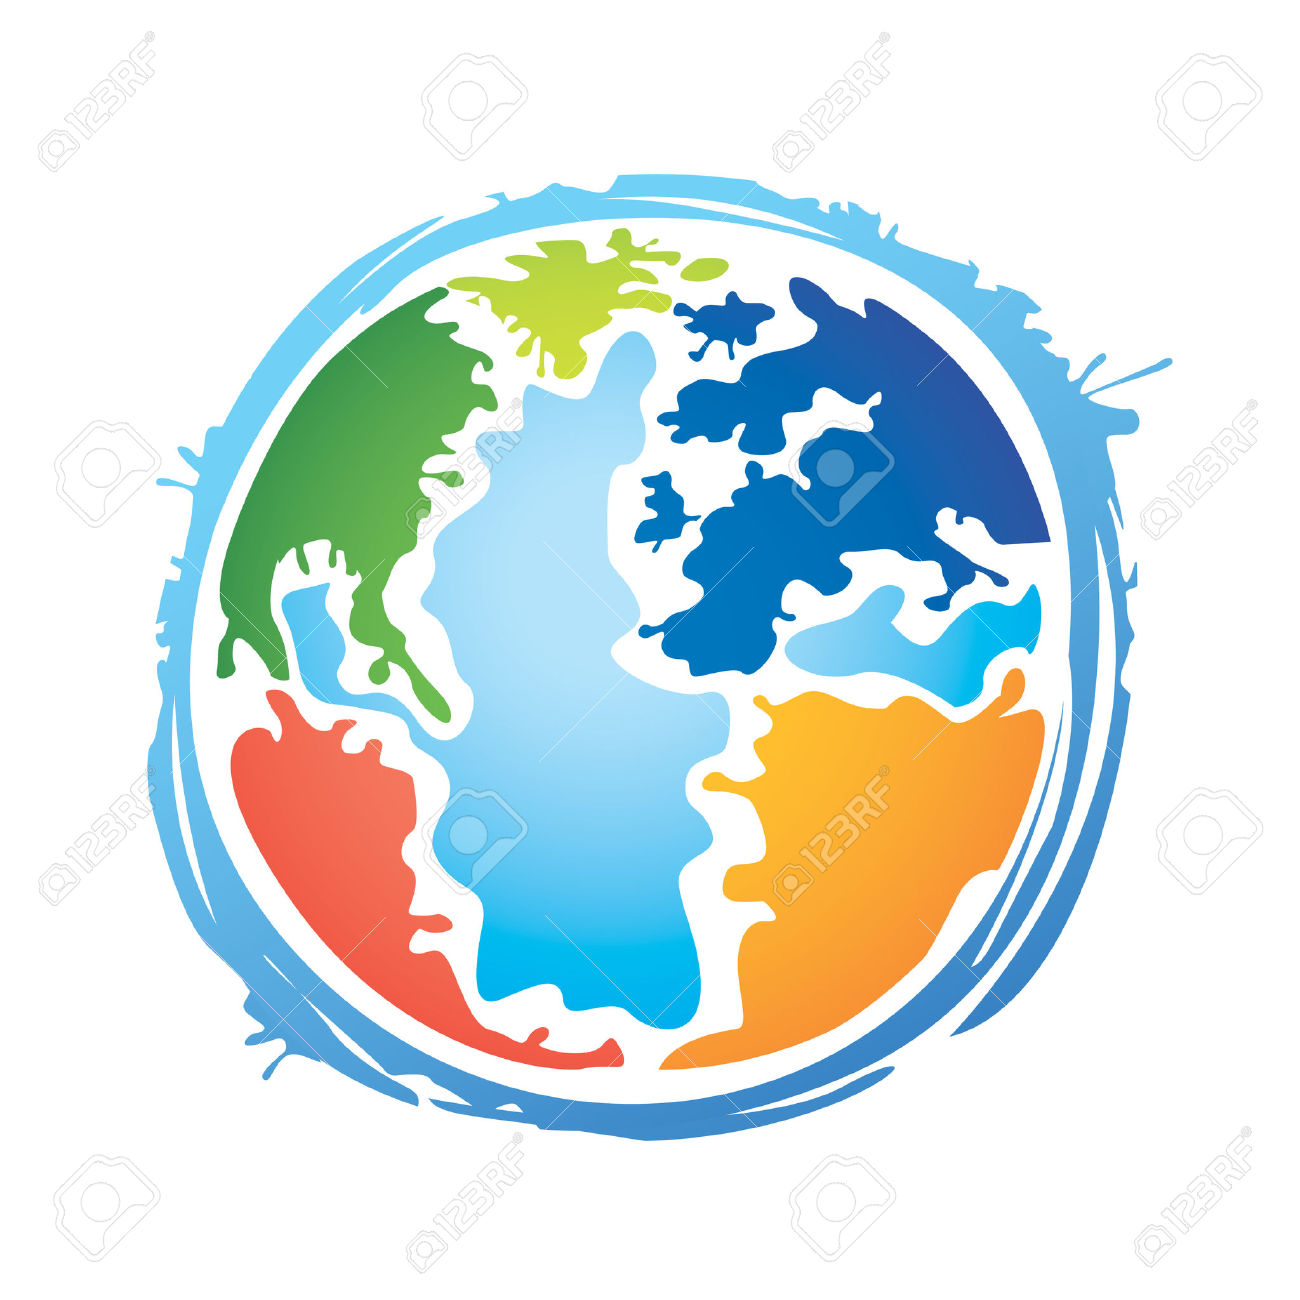 Color Planet Royalty Free Cliparts, Vectors, And Stock.